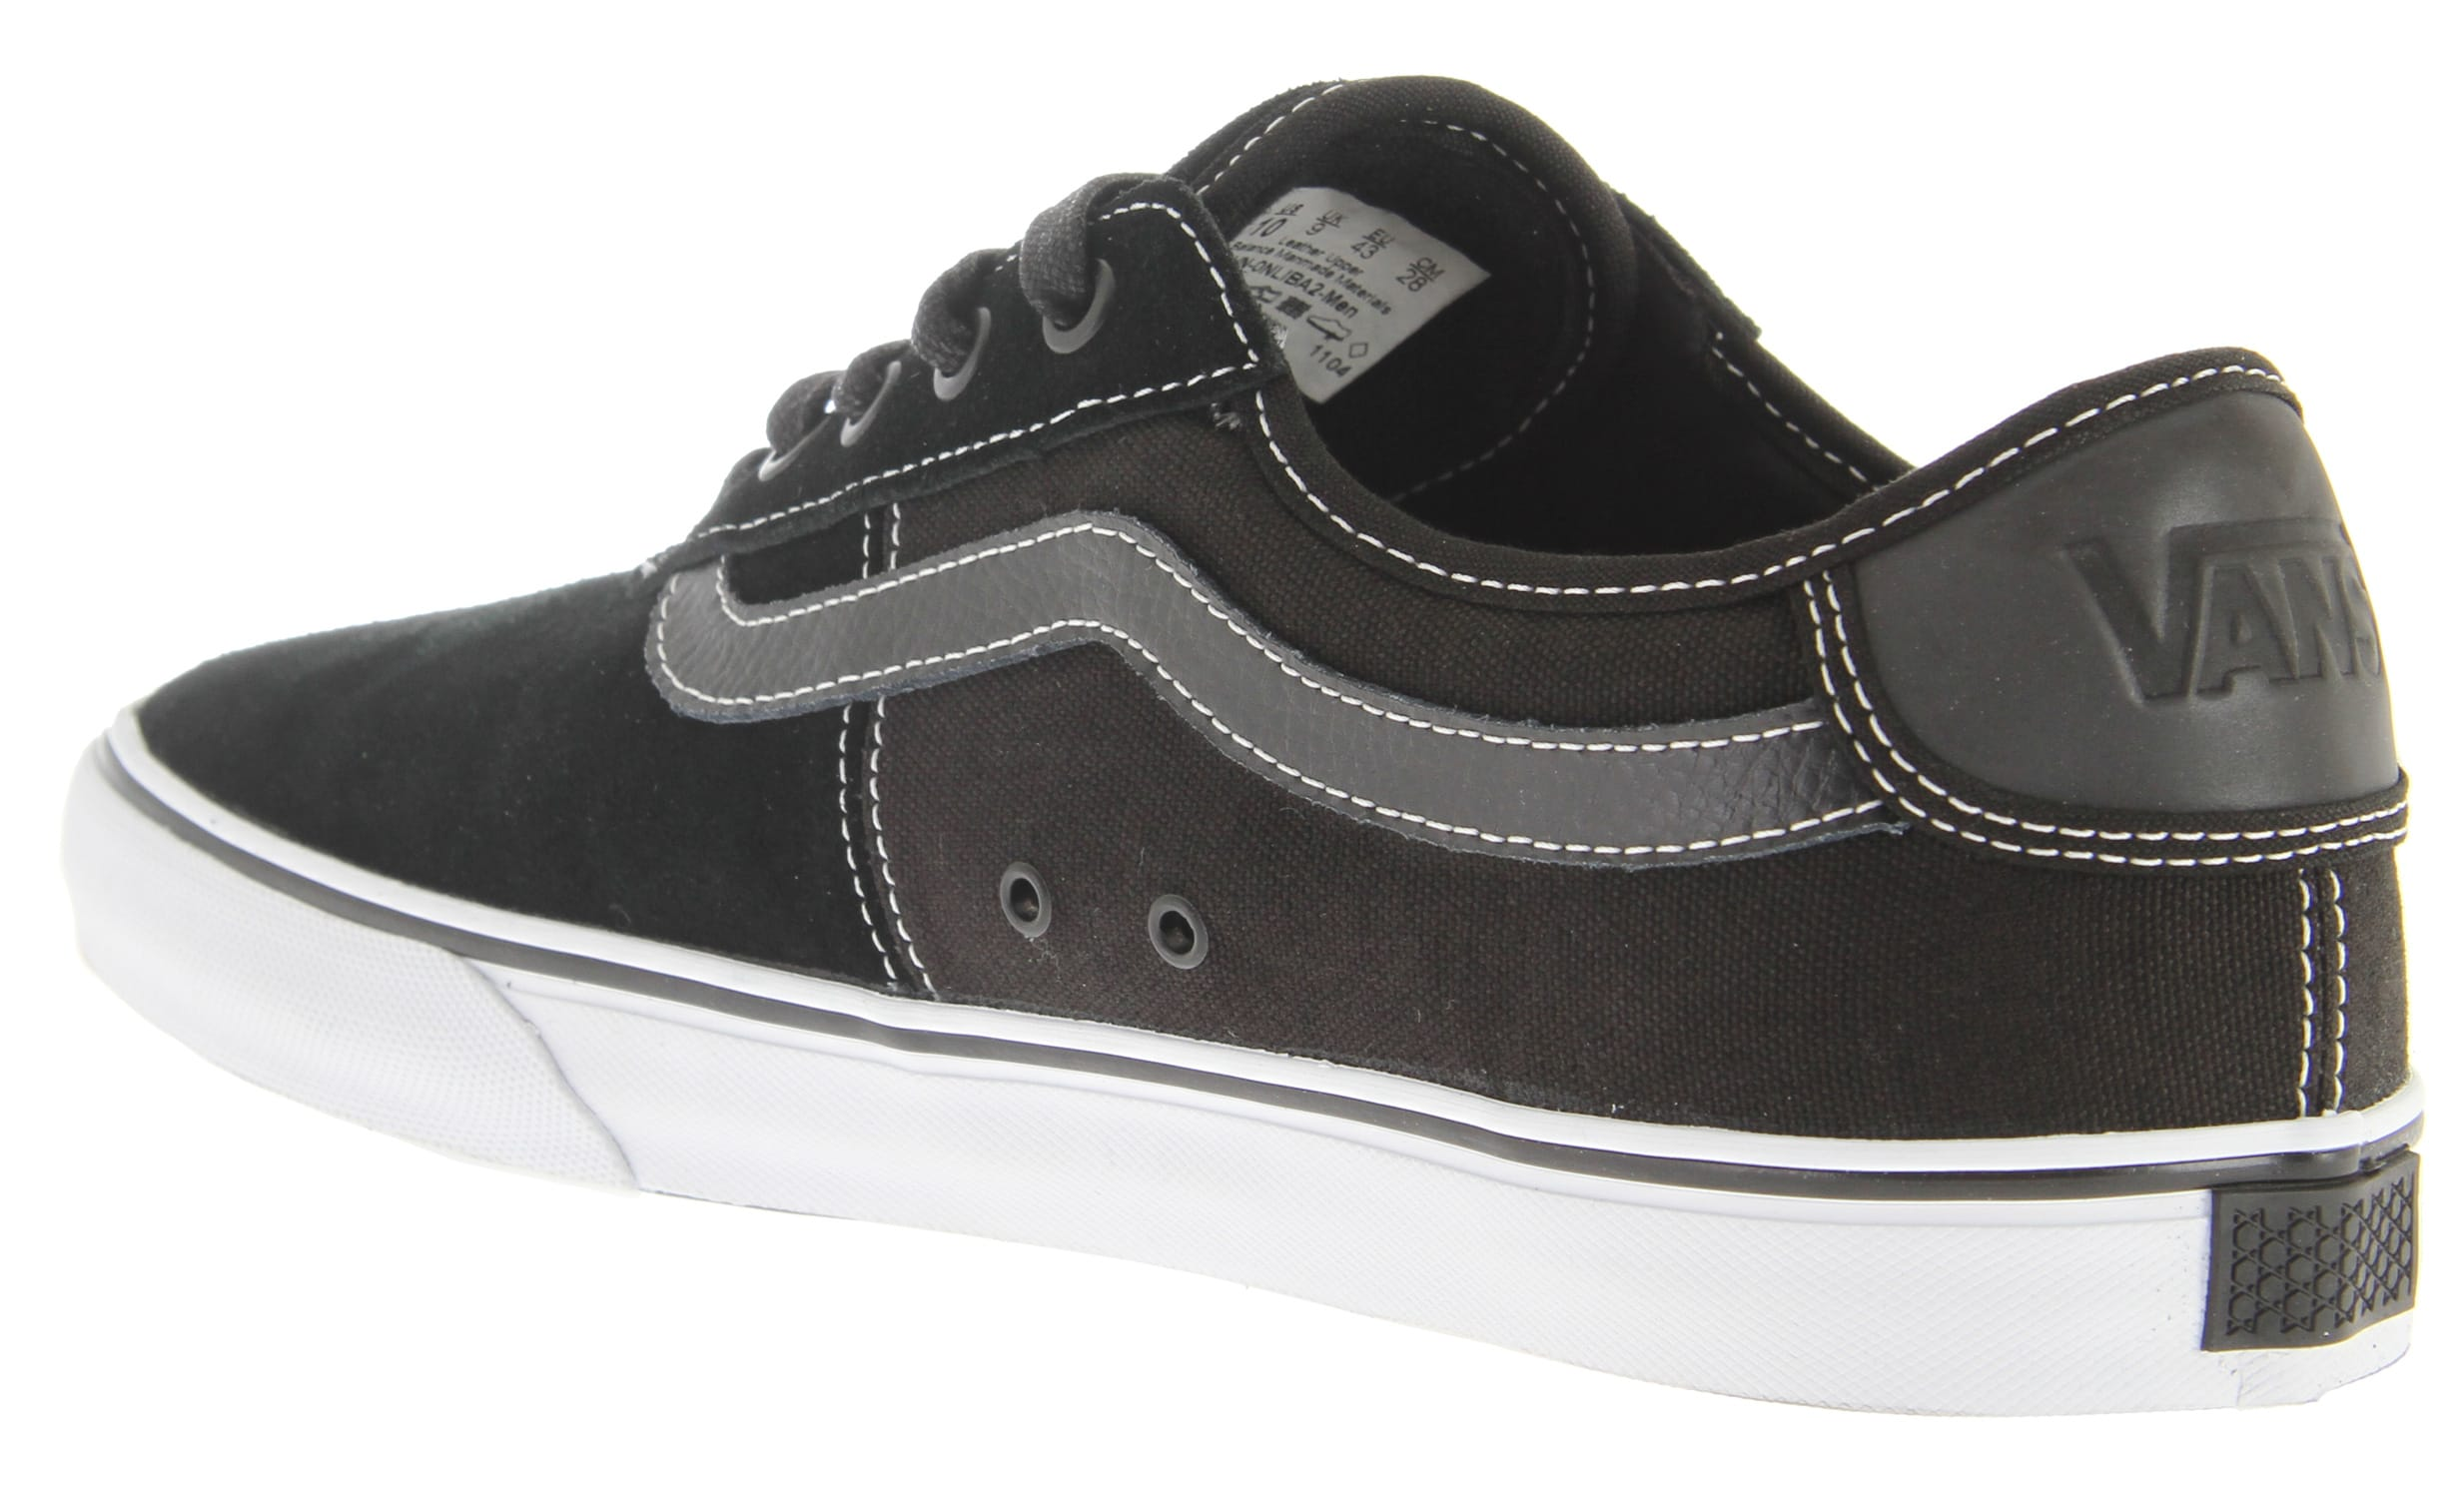 832a3941e8 Buy 2 OFF ANY vans rowley spv CASE AND GET 70% OFF!